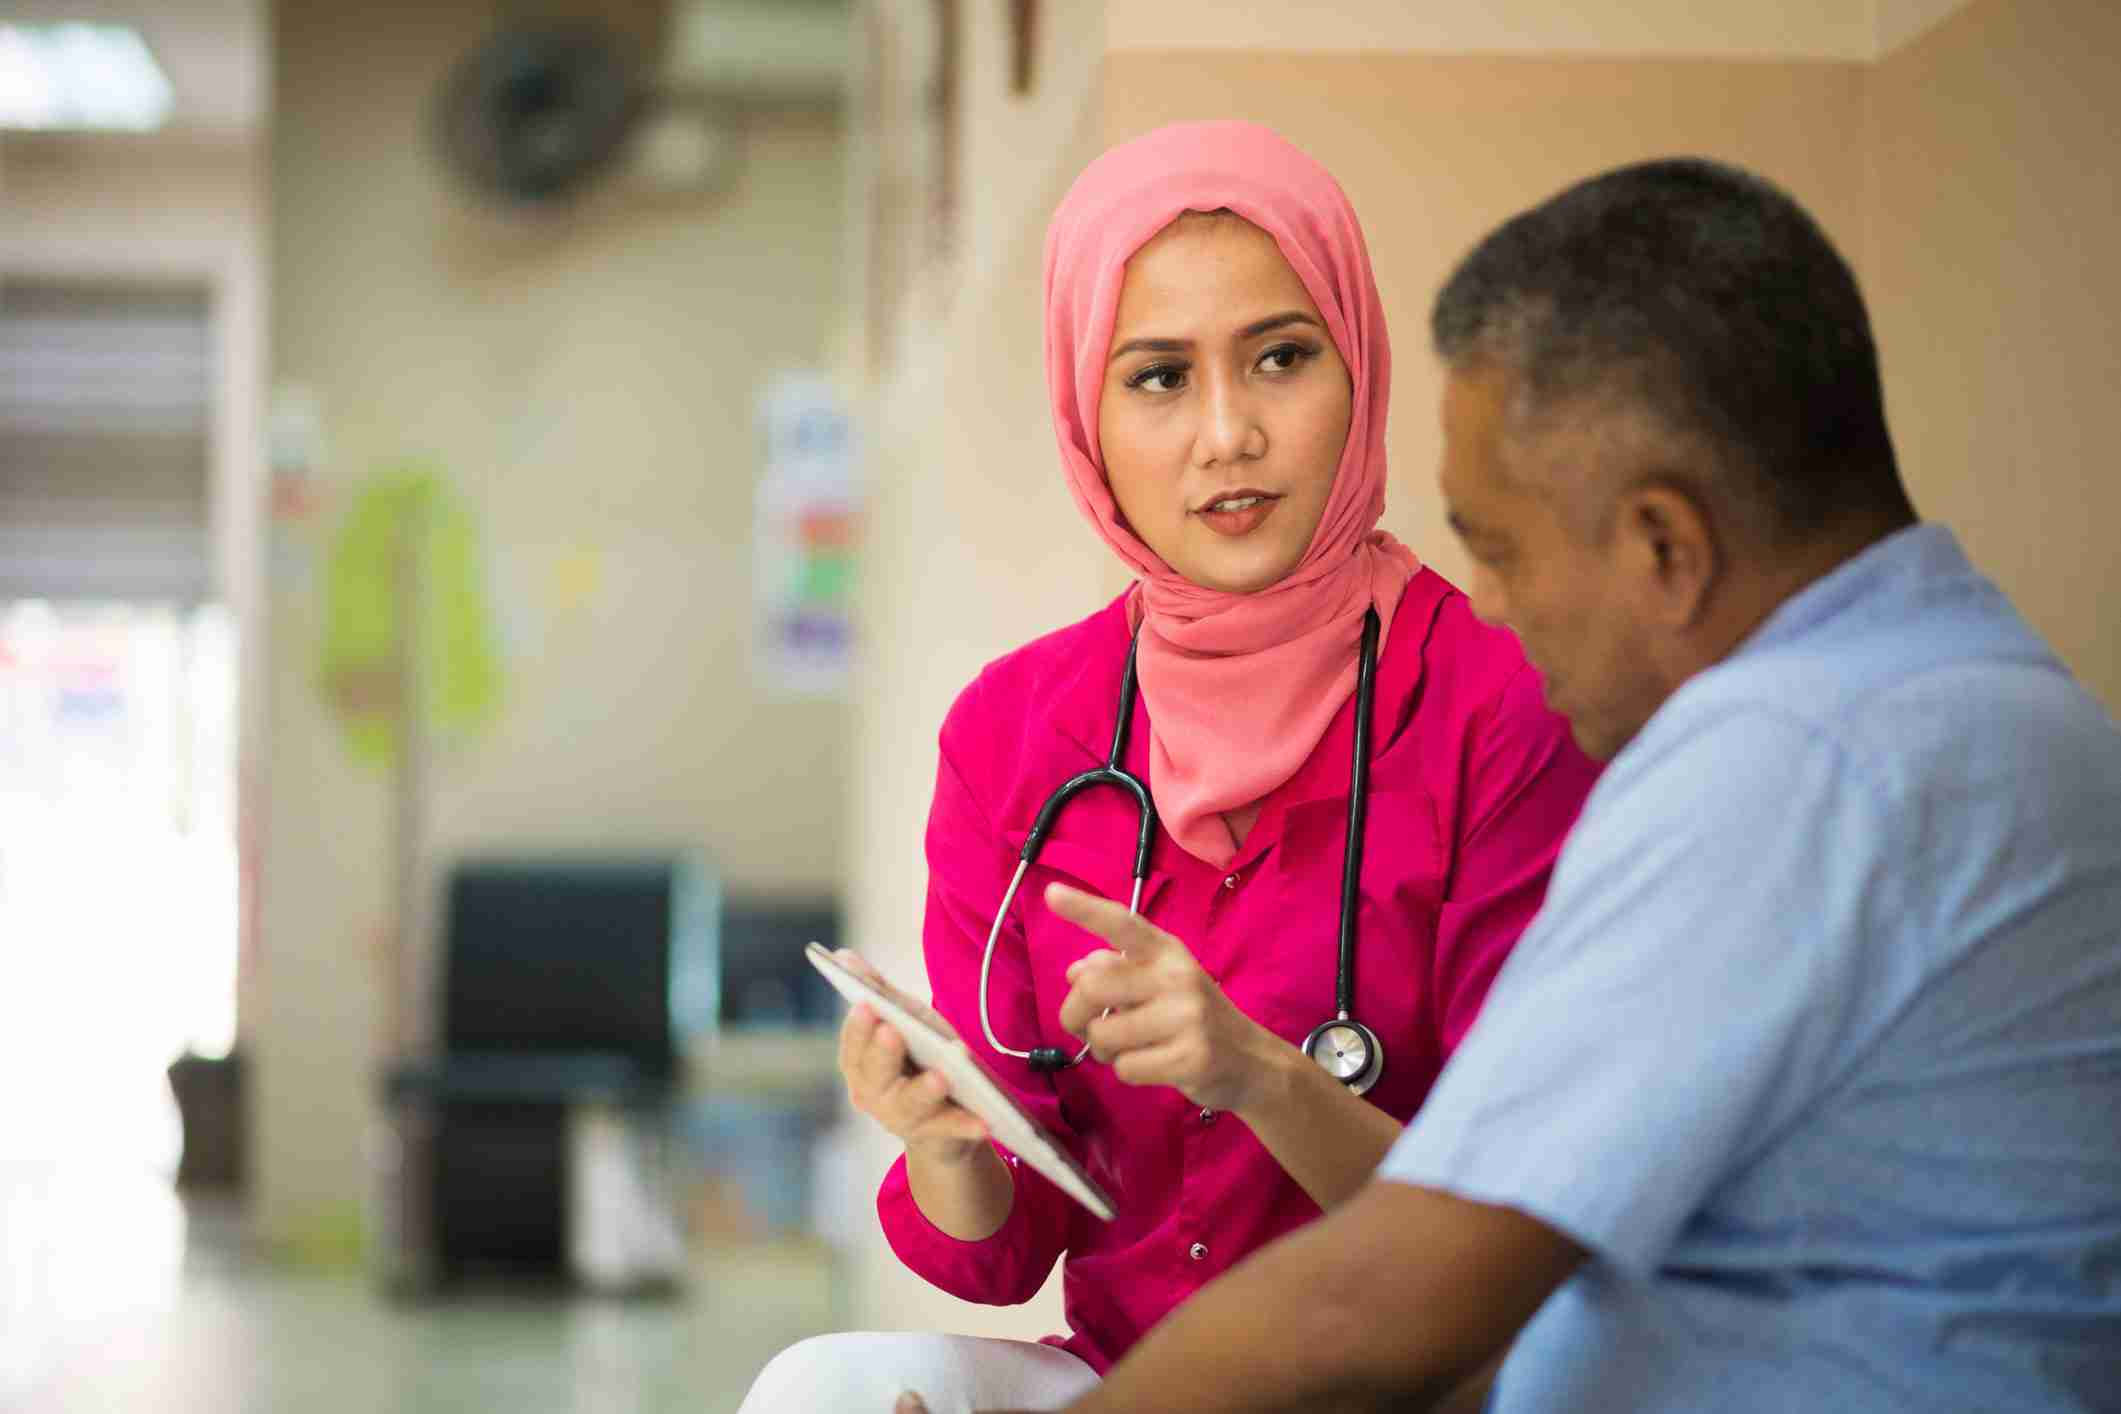 Muslim female Clinician or Registered Nurse [RN]in pink hijab, wearing a stethoscope, having a discussion with a Hispanic-American male.